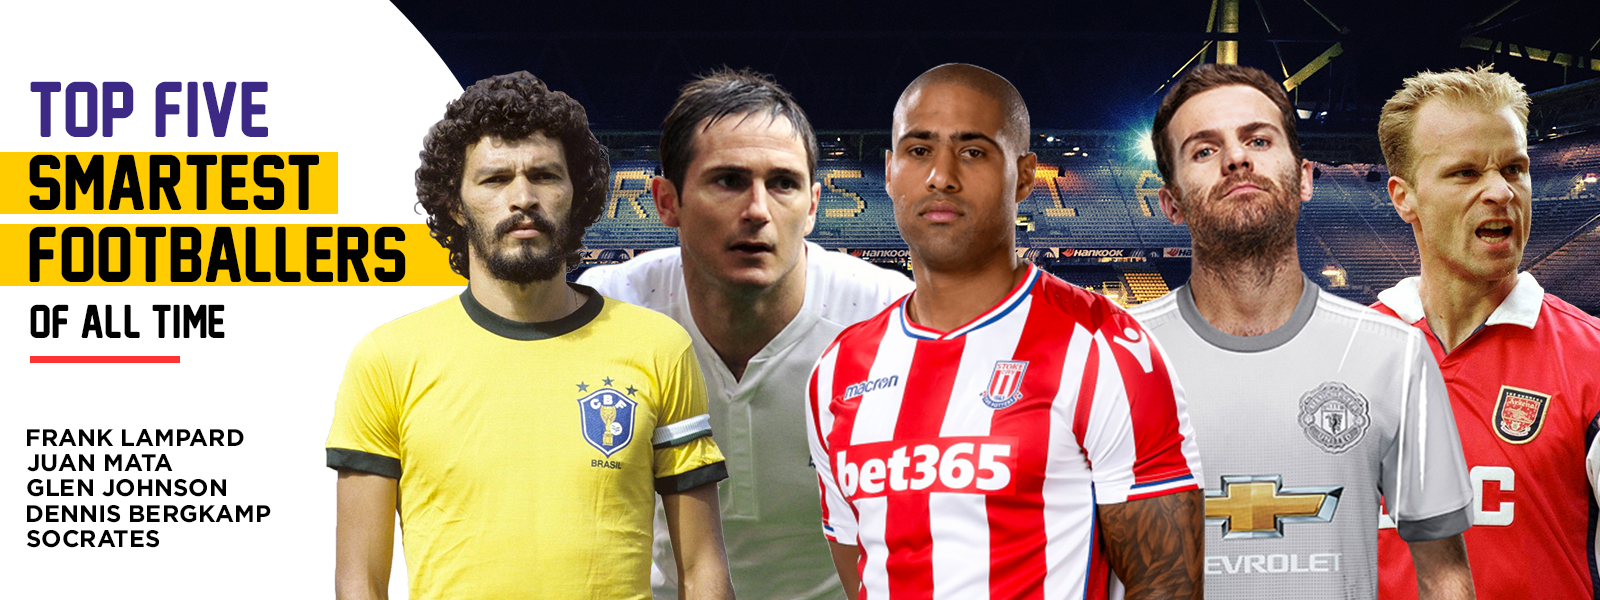 World Top Five Smartest Footballers Of All Time